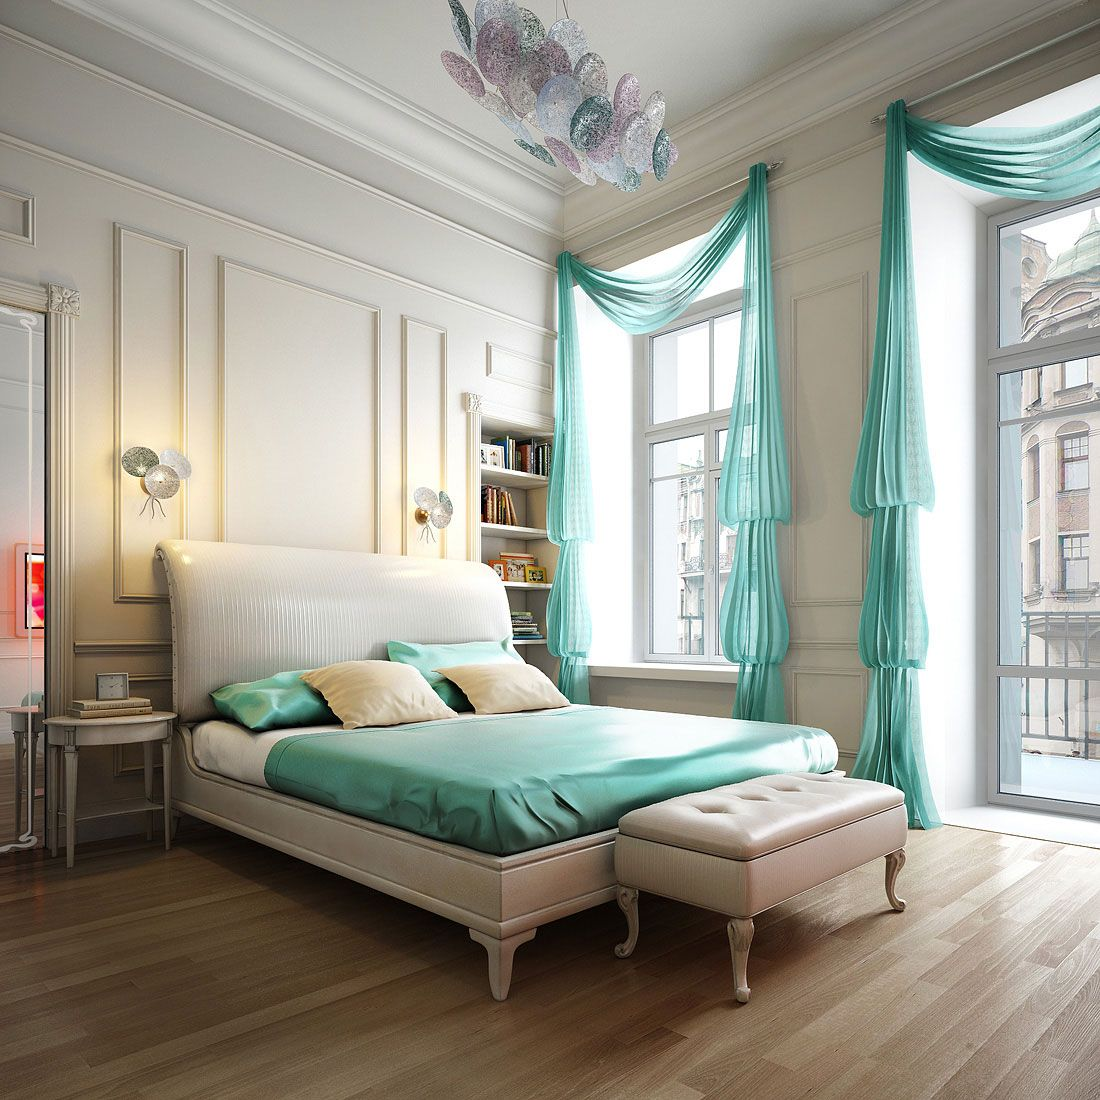 Living Room Bedroom Decorating Ideas Pinterest 1000 images about bedroom on pinterest sets for girls study desk and blue wall paints